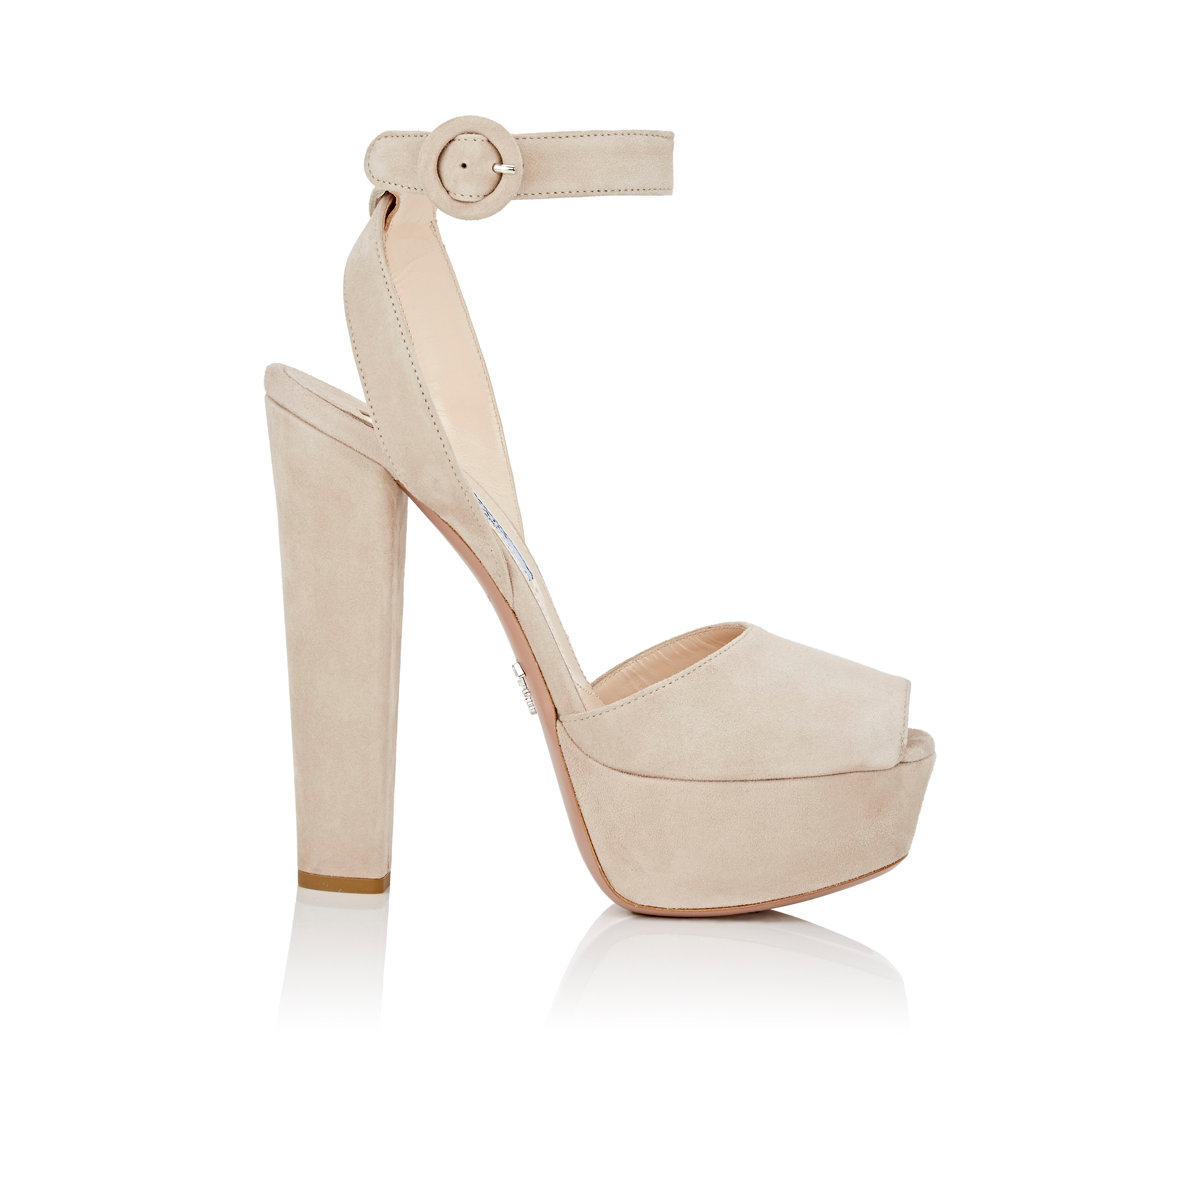 256a9a074fe Lyst - Prada Suede Platform Sandals in Natural